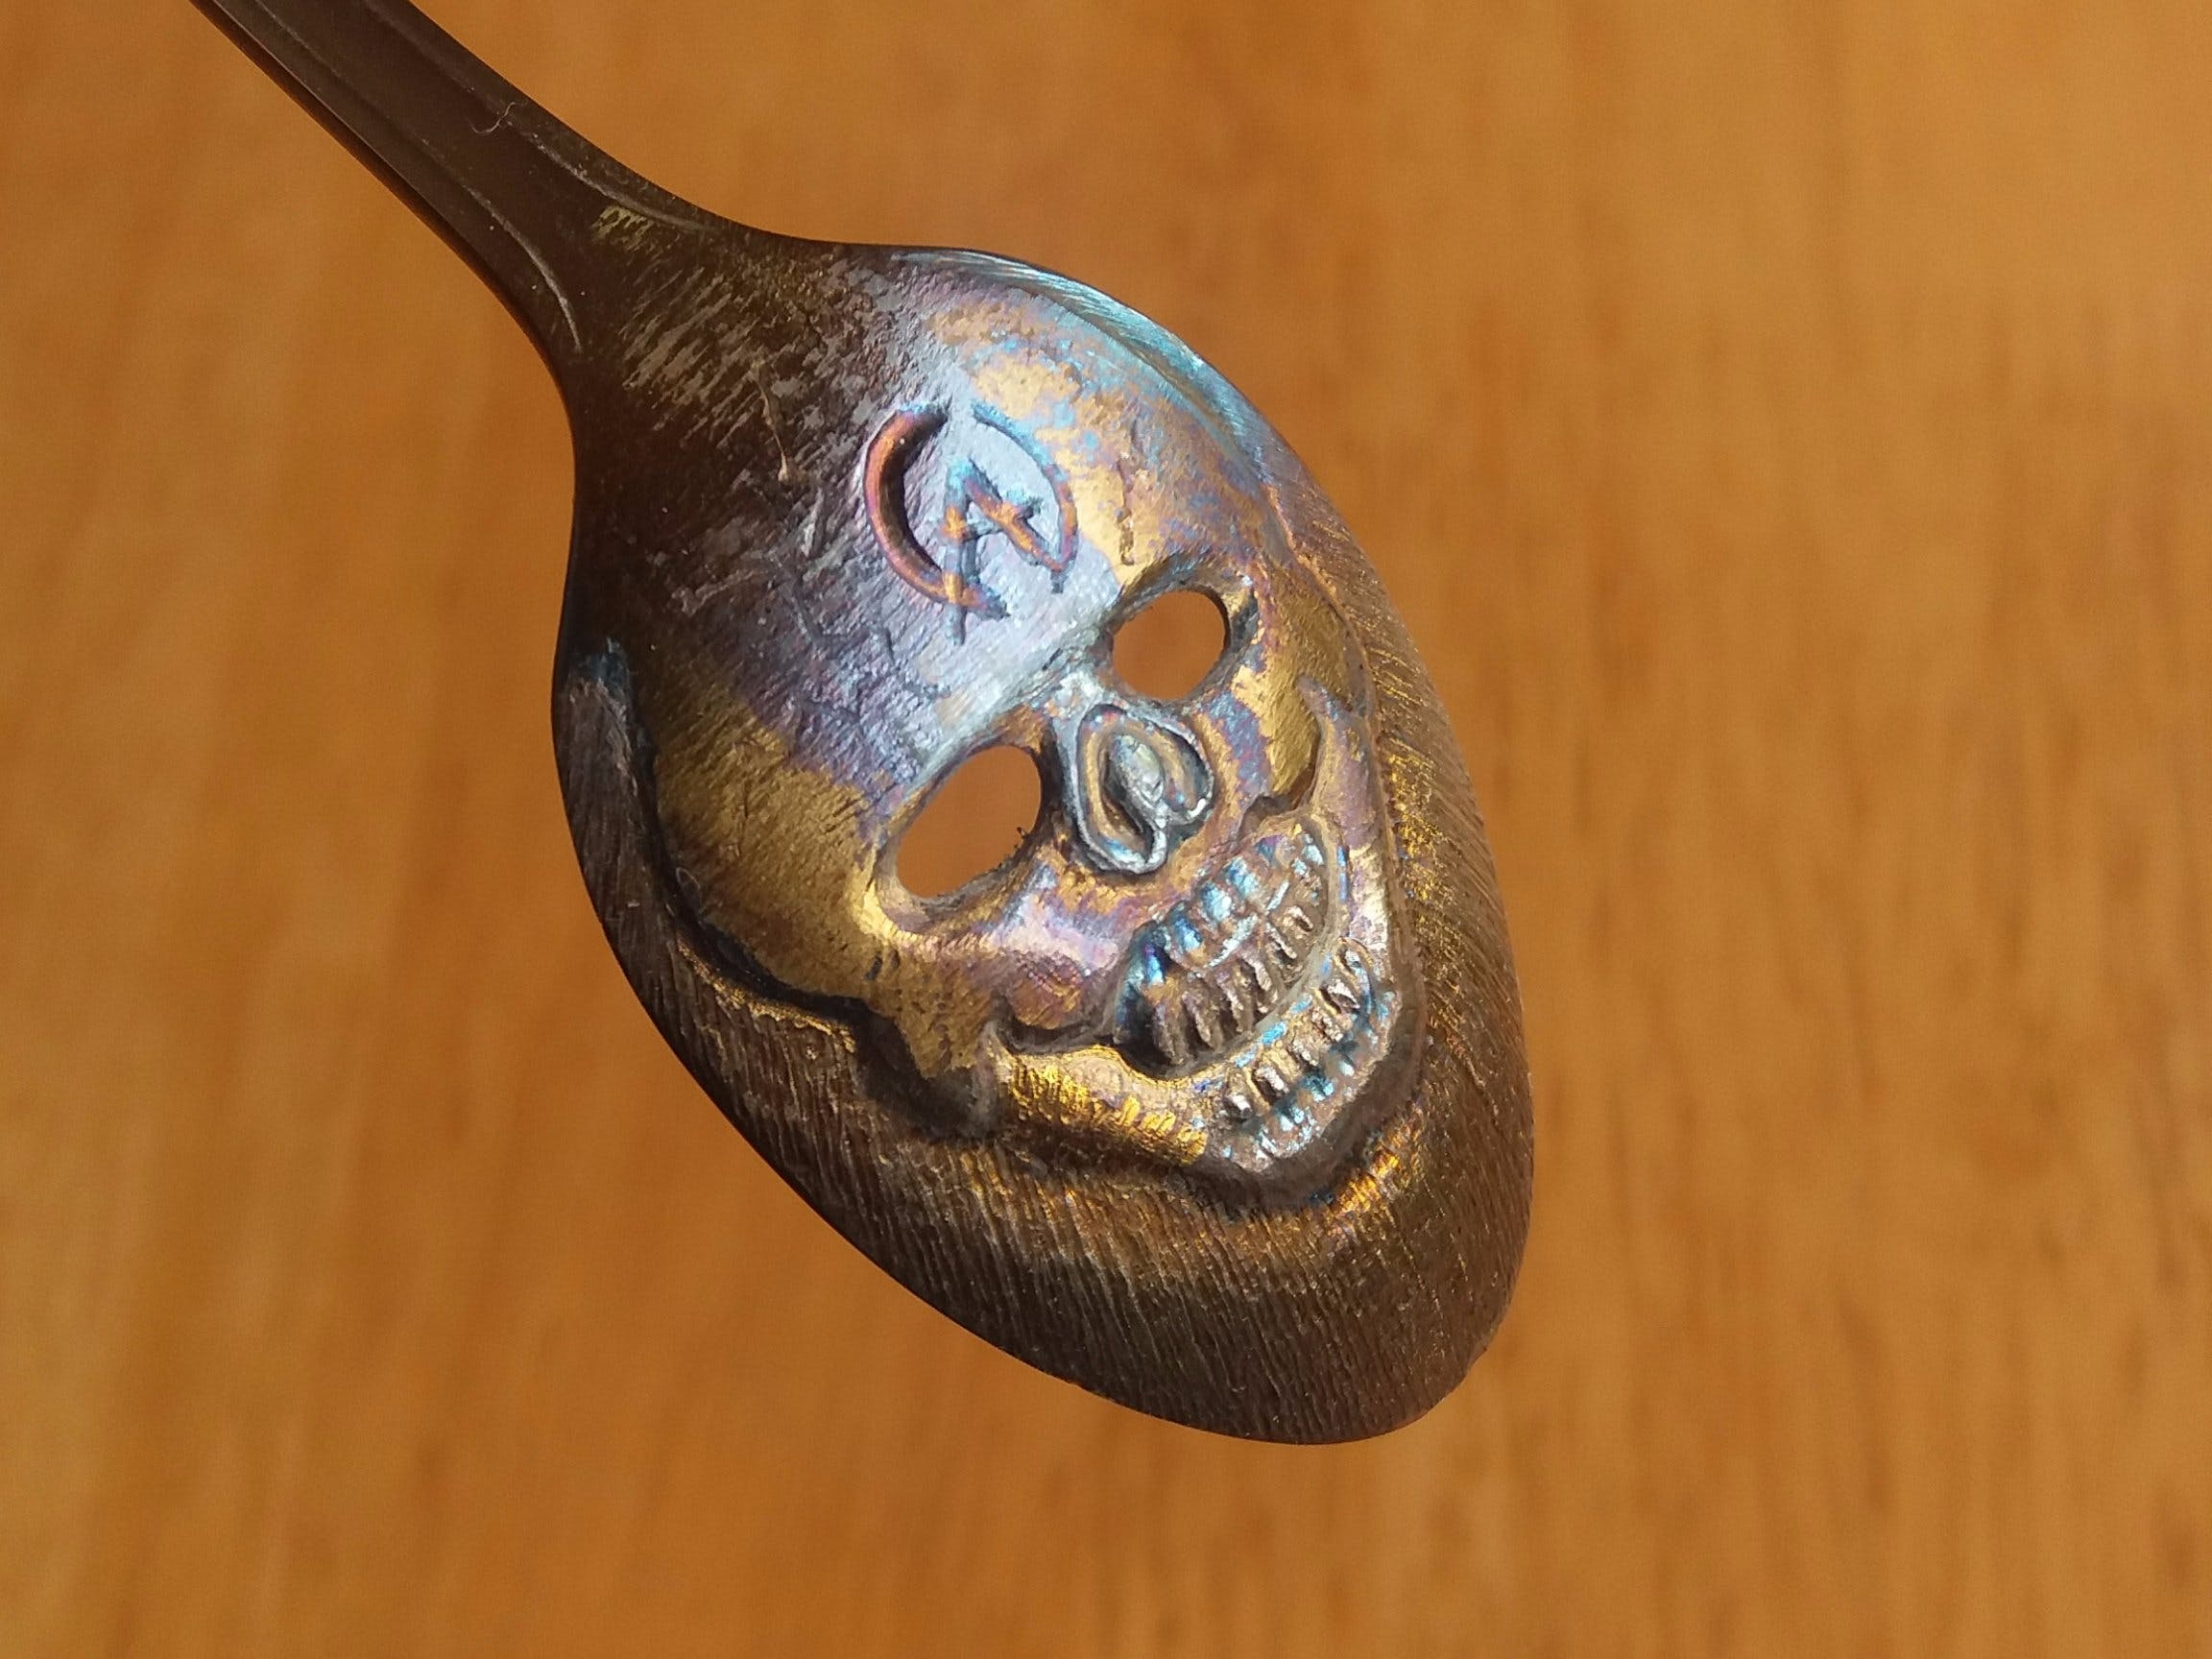 Skull spoon. (clown face)